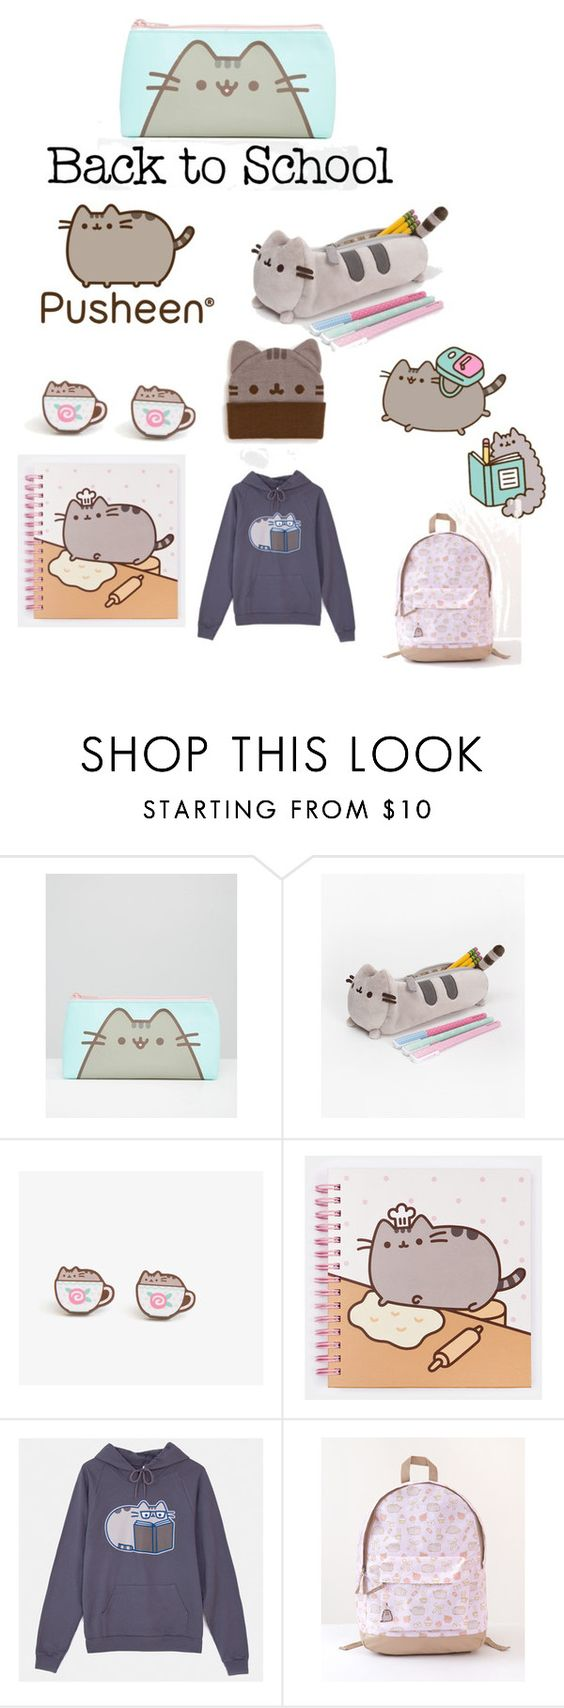 """#PVxPusheen"" by shistyle ❤ liked on Polyvore featuring Pusheen, contestentry and PVxPusheen"